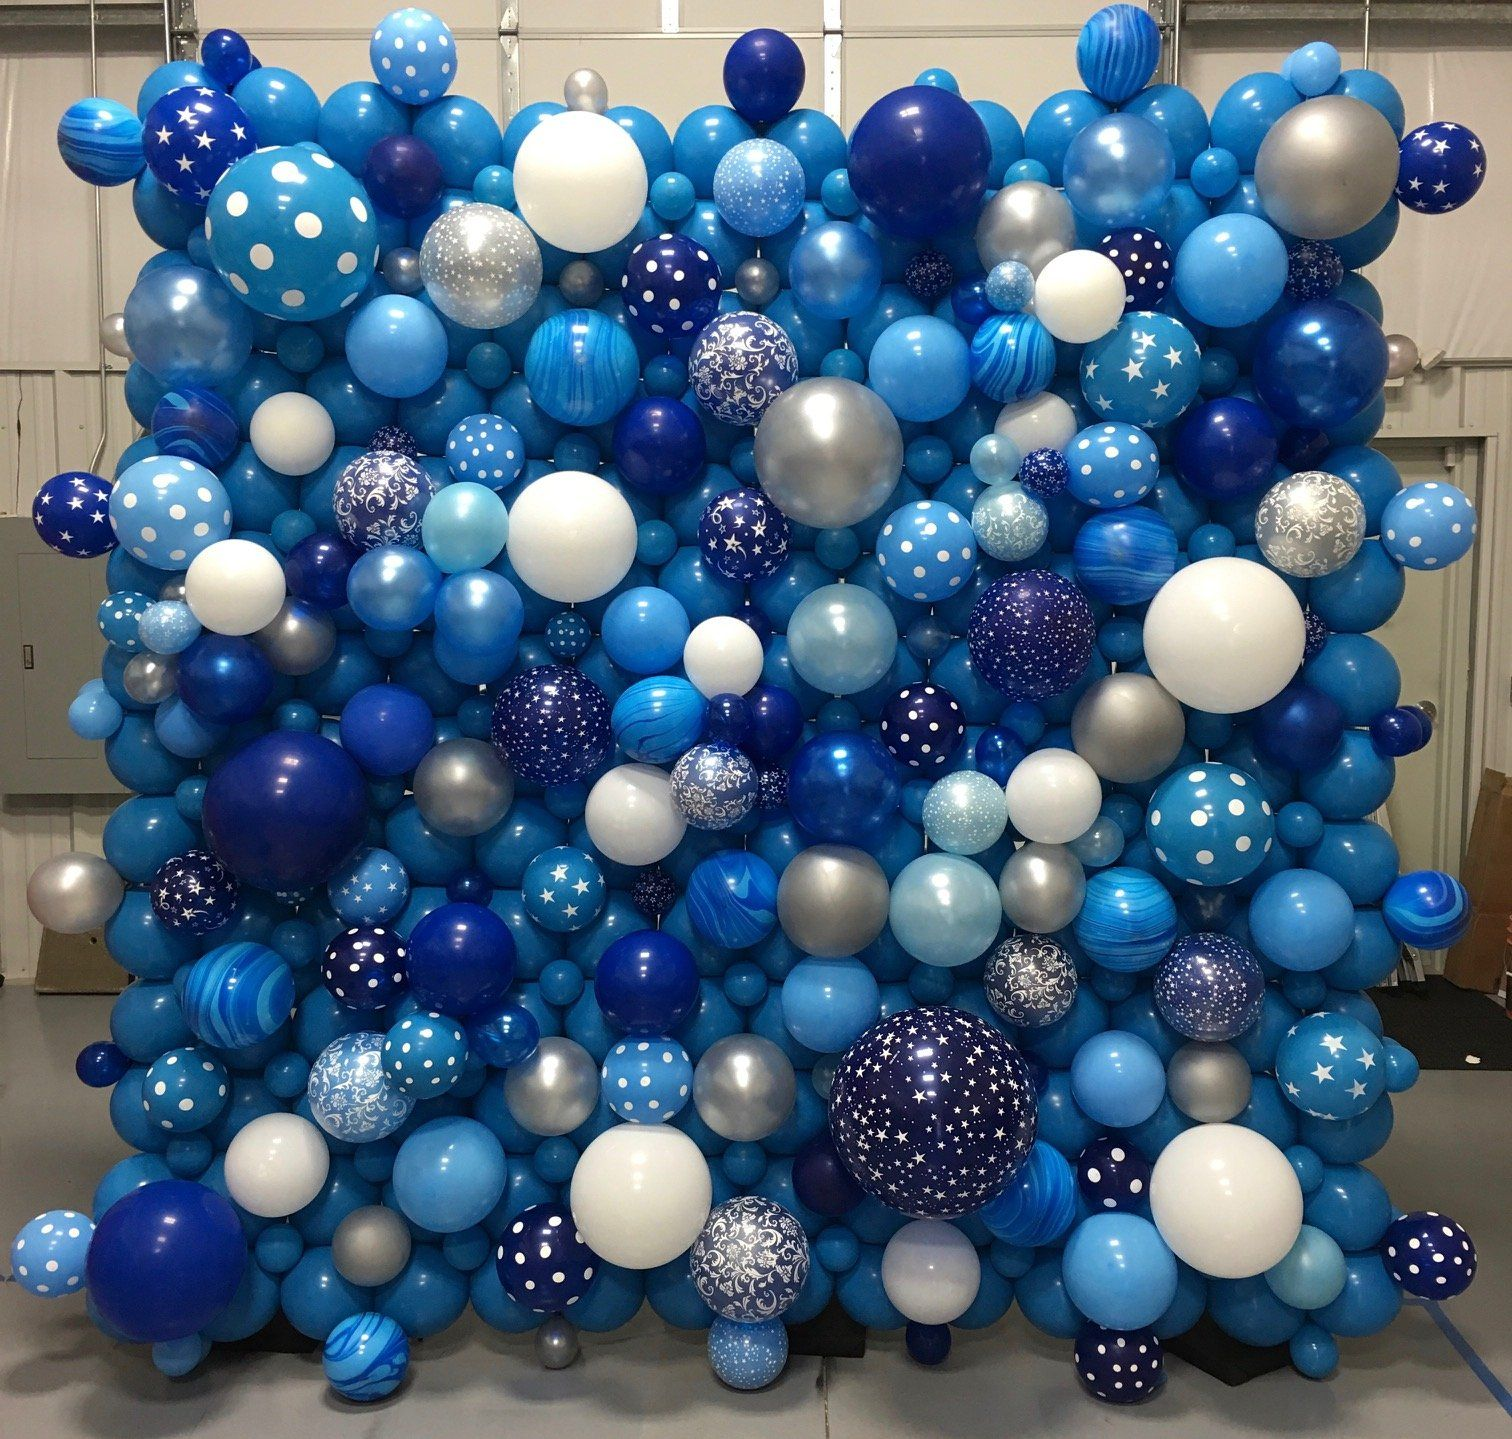 Custom Organic Wall in 2020 | Balloon decorations party ...